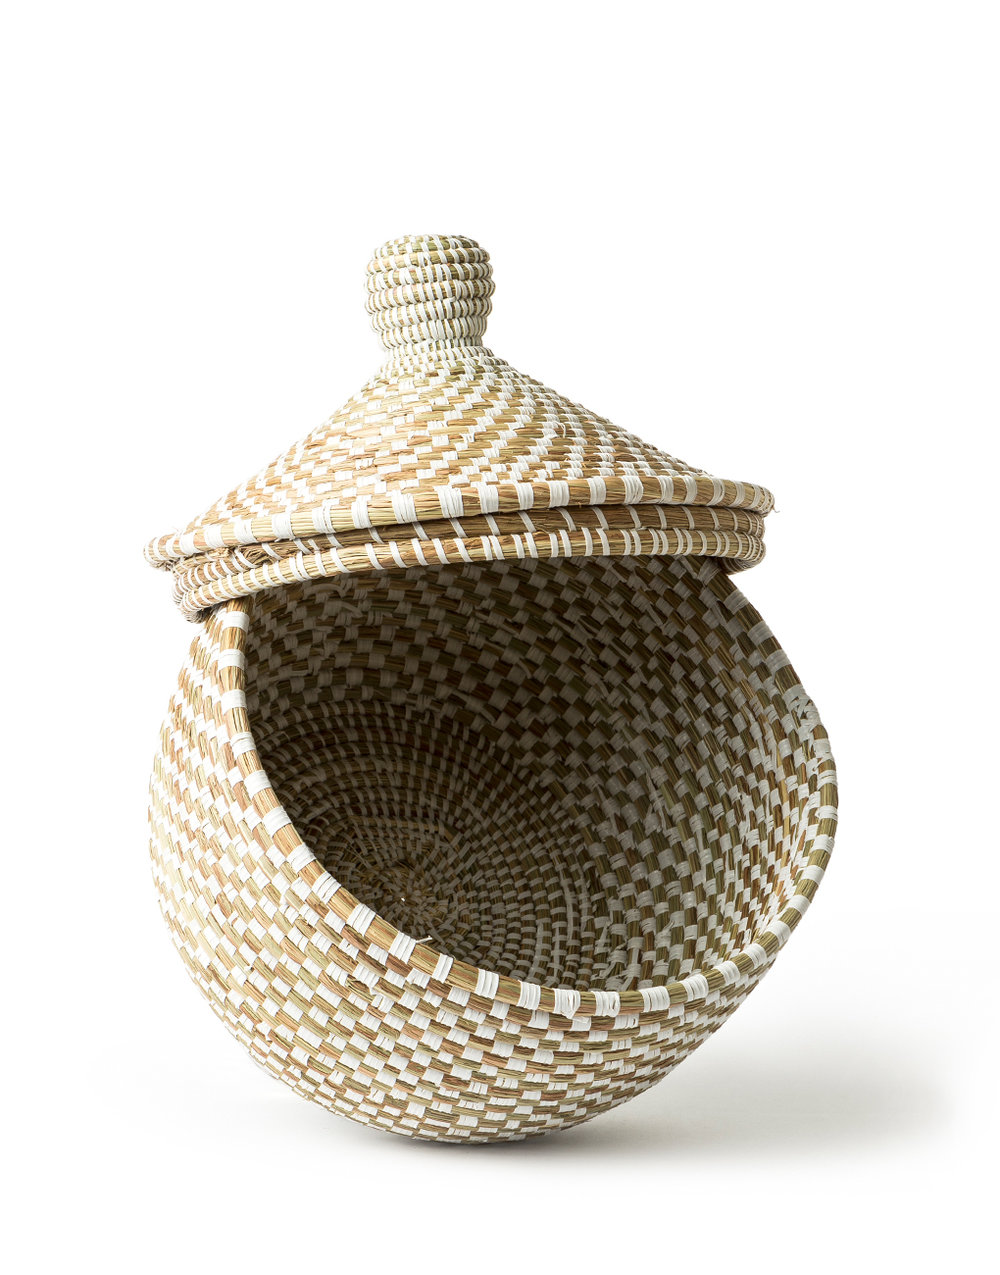 Whimisical-Basket-White-Checker-2-{The-Little-Market}-99_42.jpg